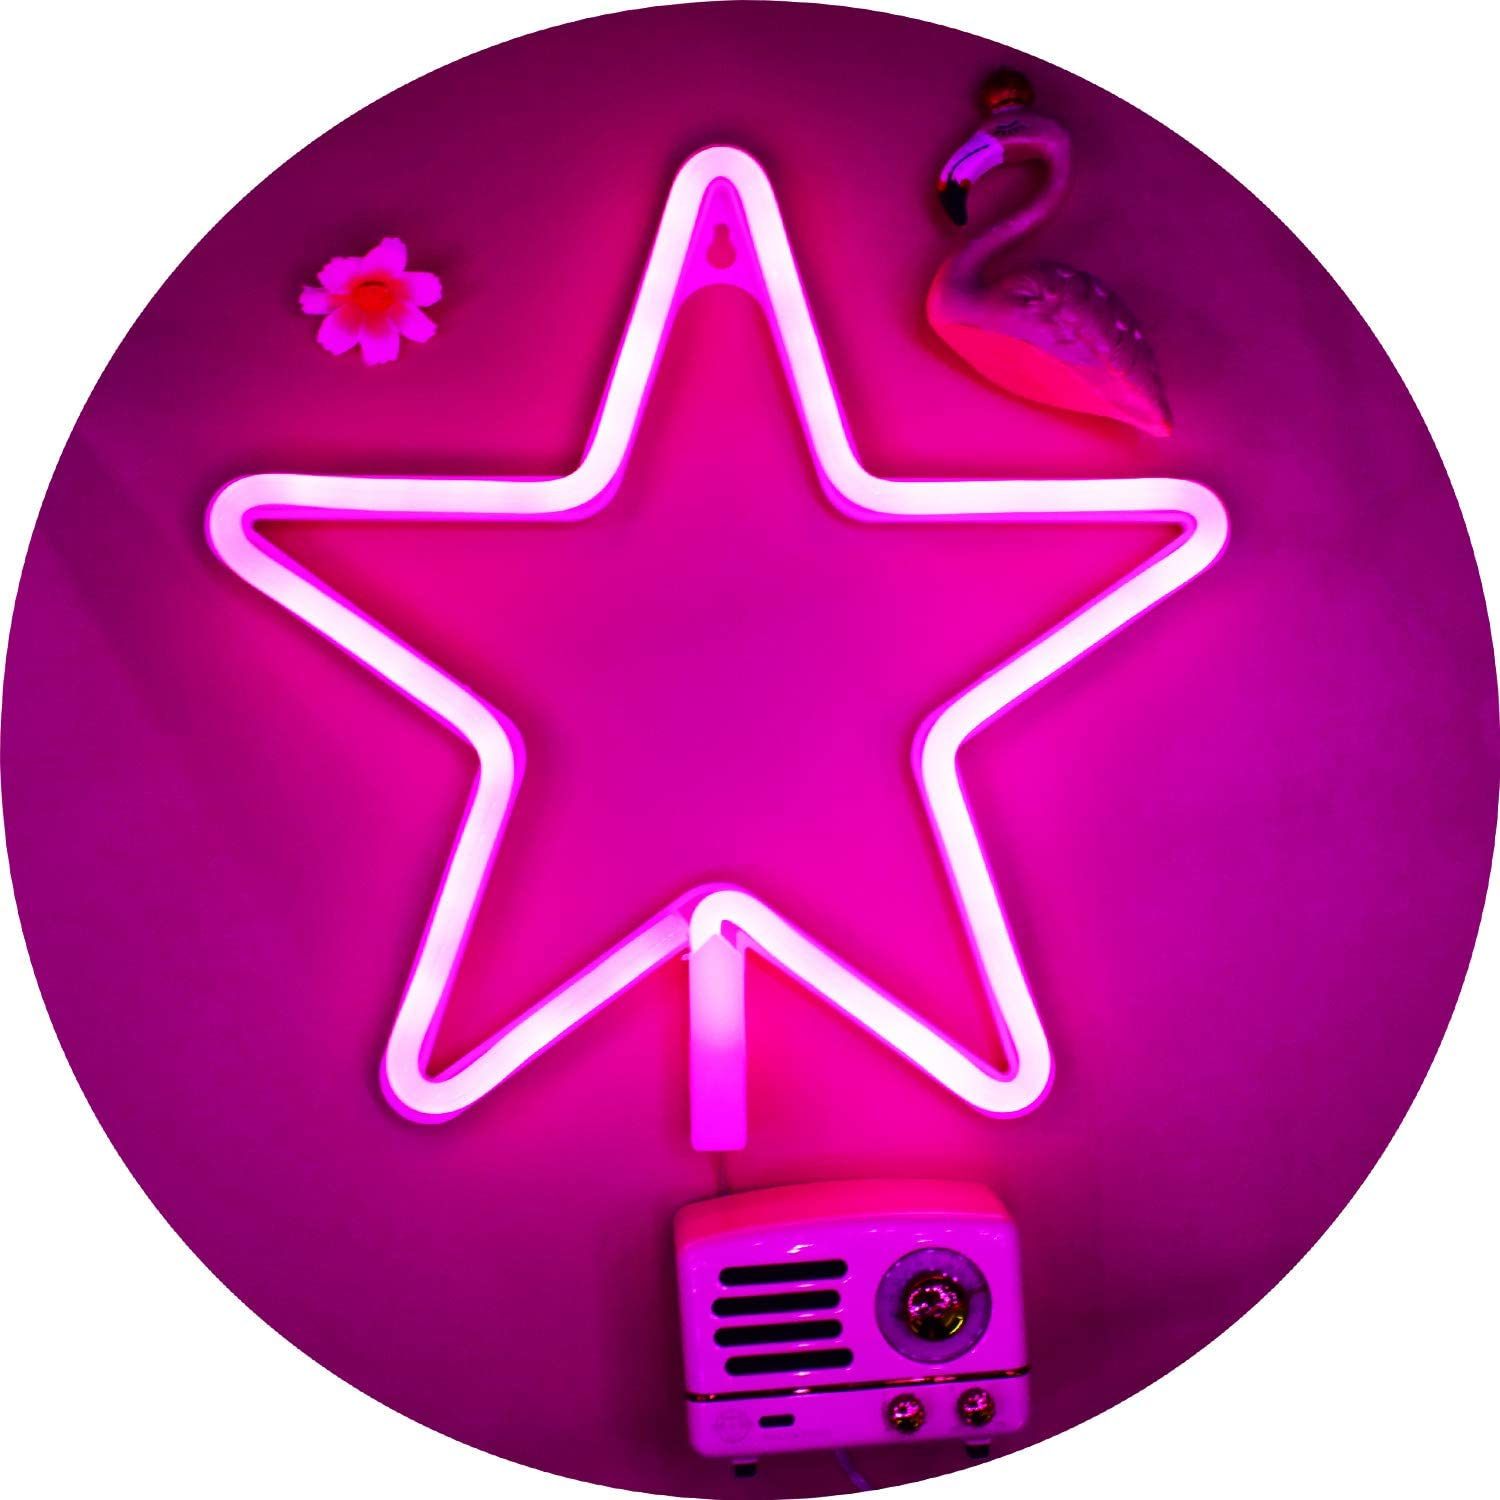 LED Star Neon Signs Light Pink Led Wall Decor, Battery or USB Operated Star Lamp Planet Neon Signs Light up for Home,Kids Room,Bar,Festive Party,Christmas,Wedding(Pink)